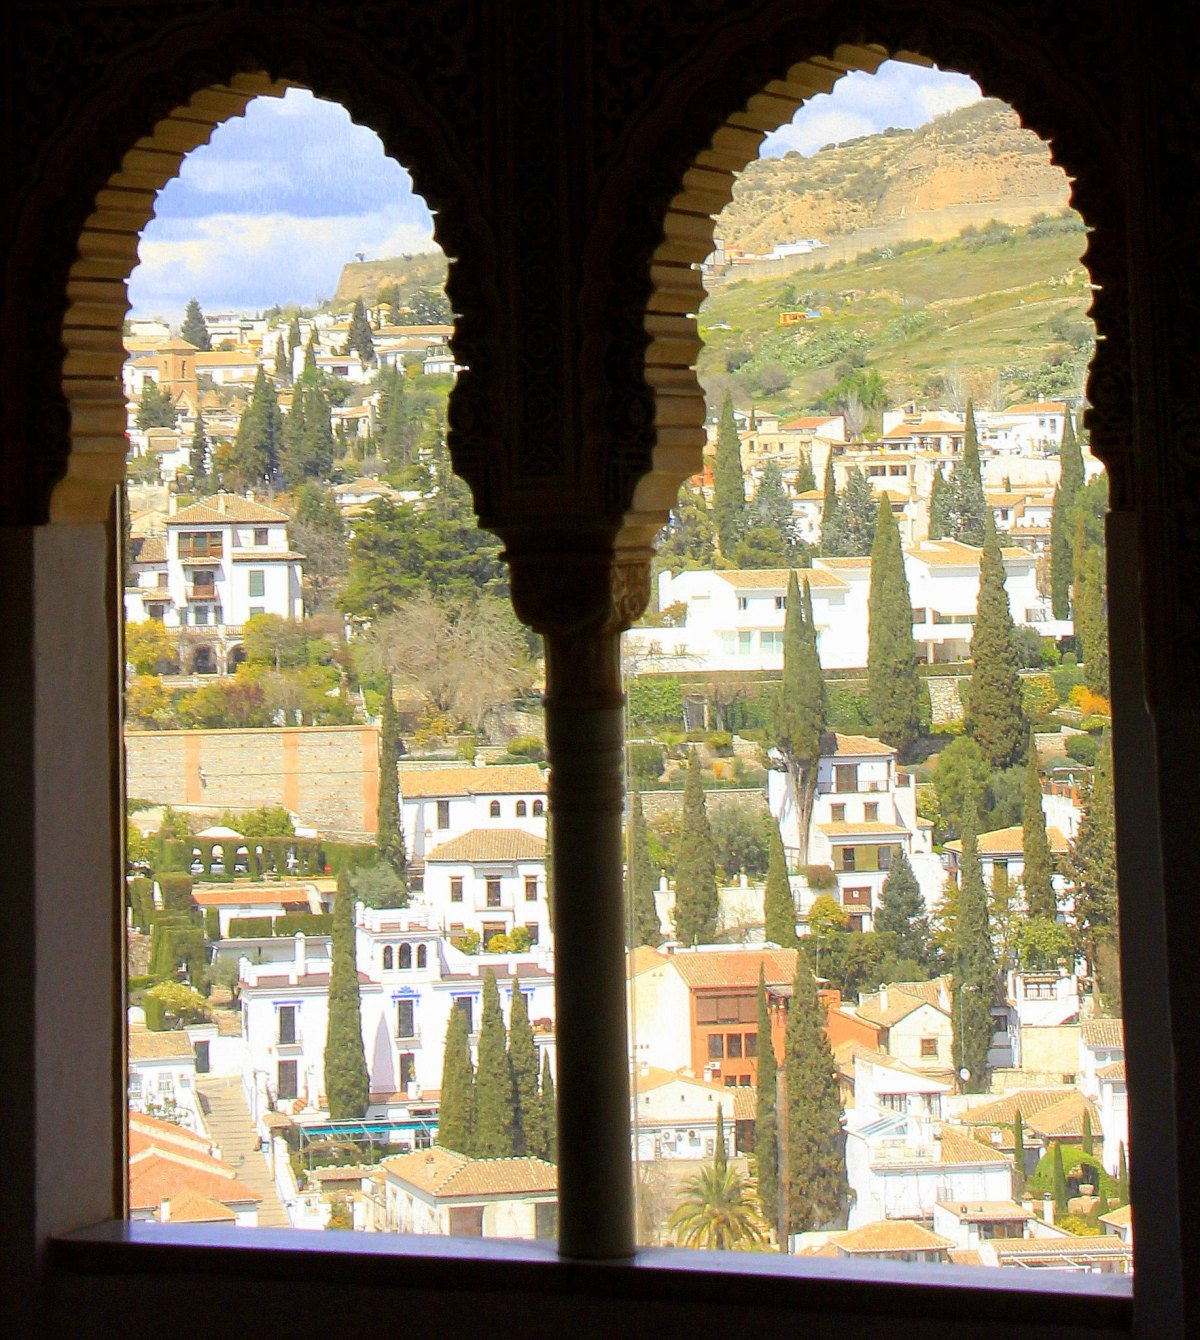 a view from nasrid palace in alhambra